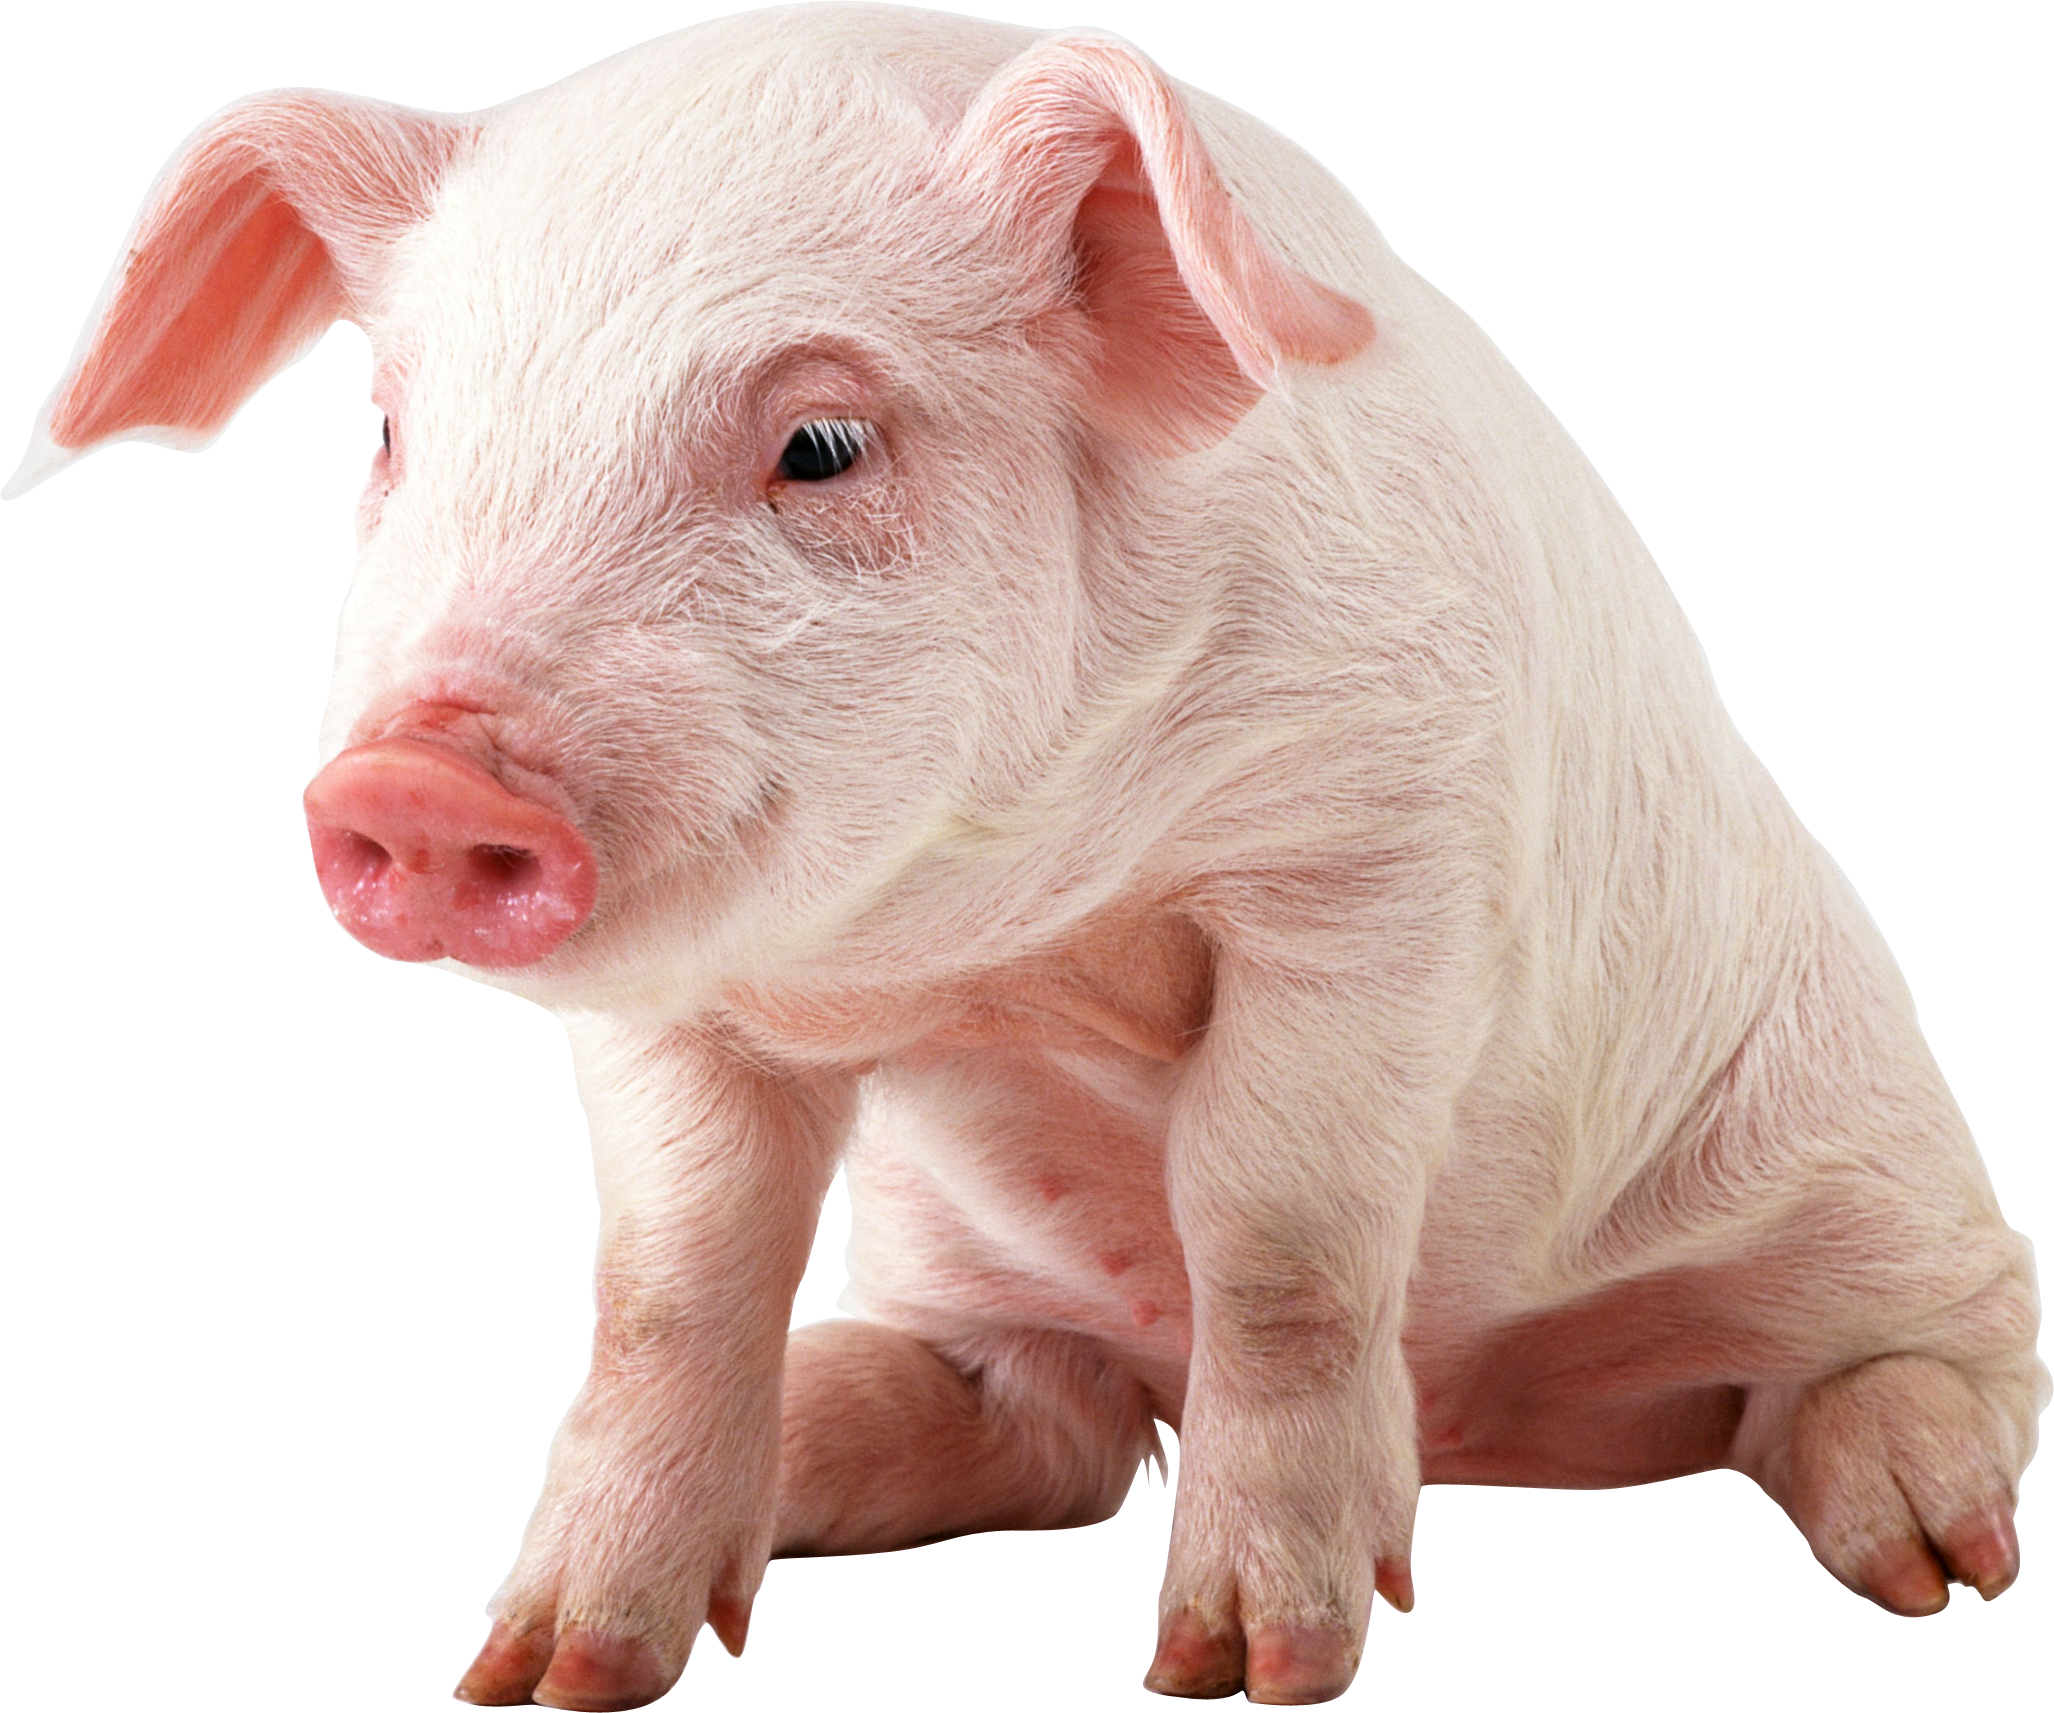 pig PNG image - Pig Face PNG HD